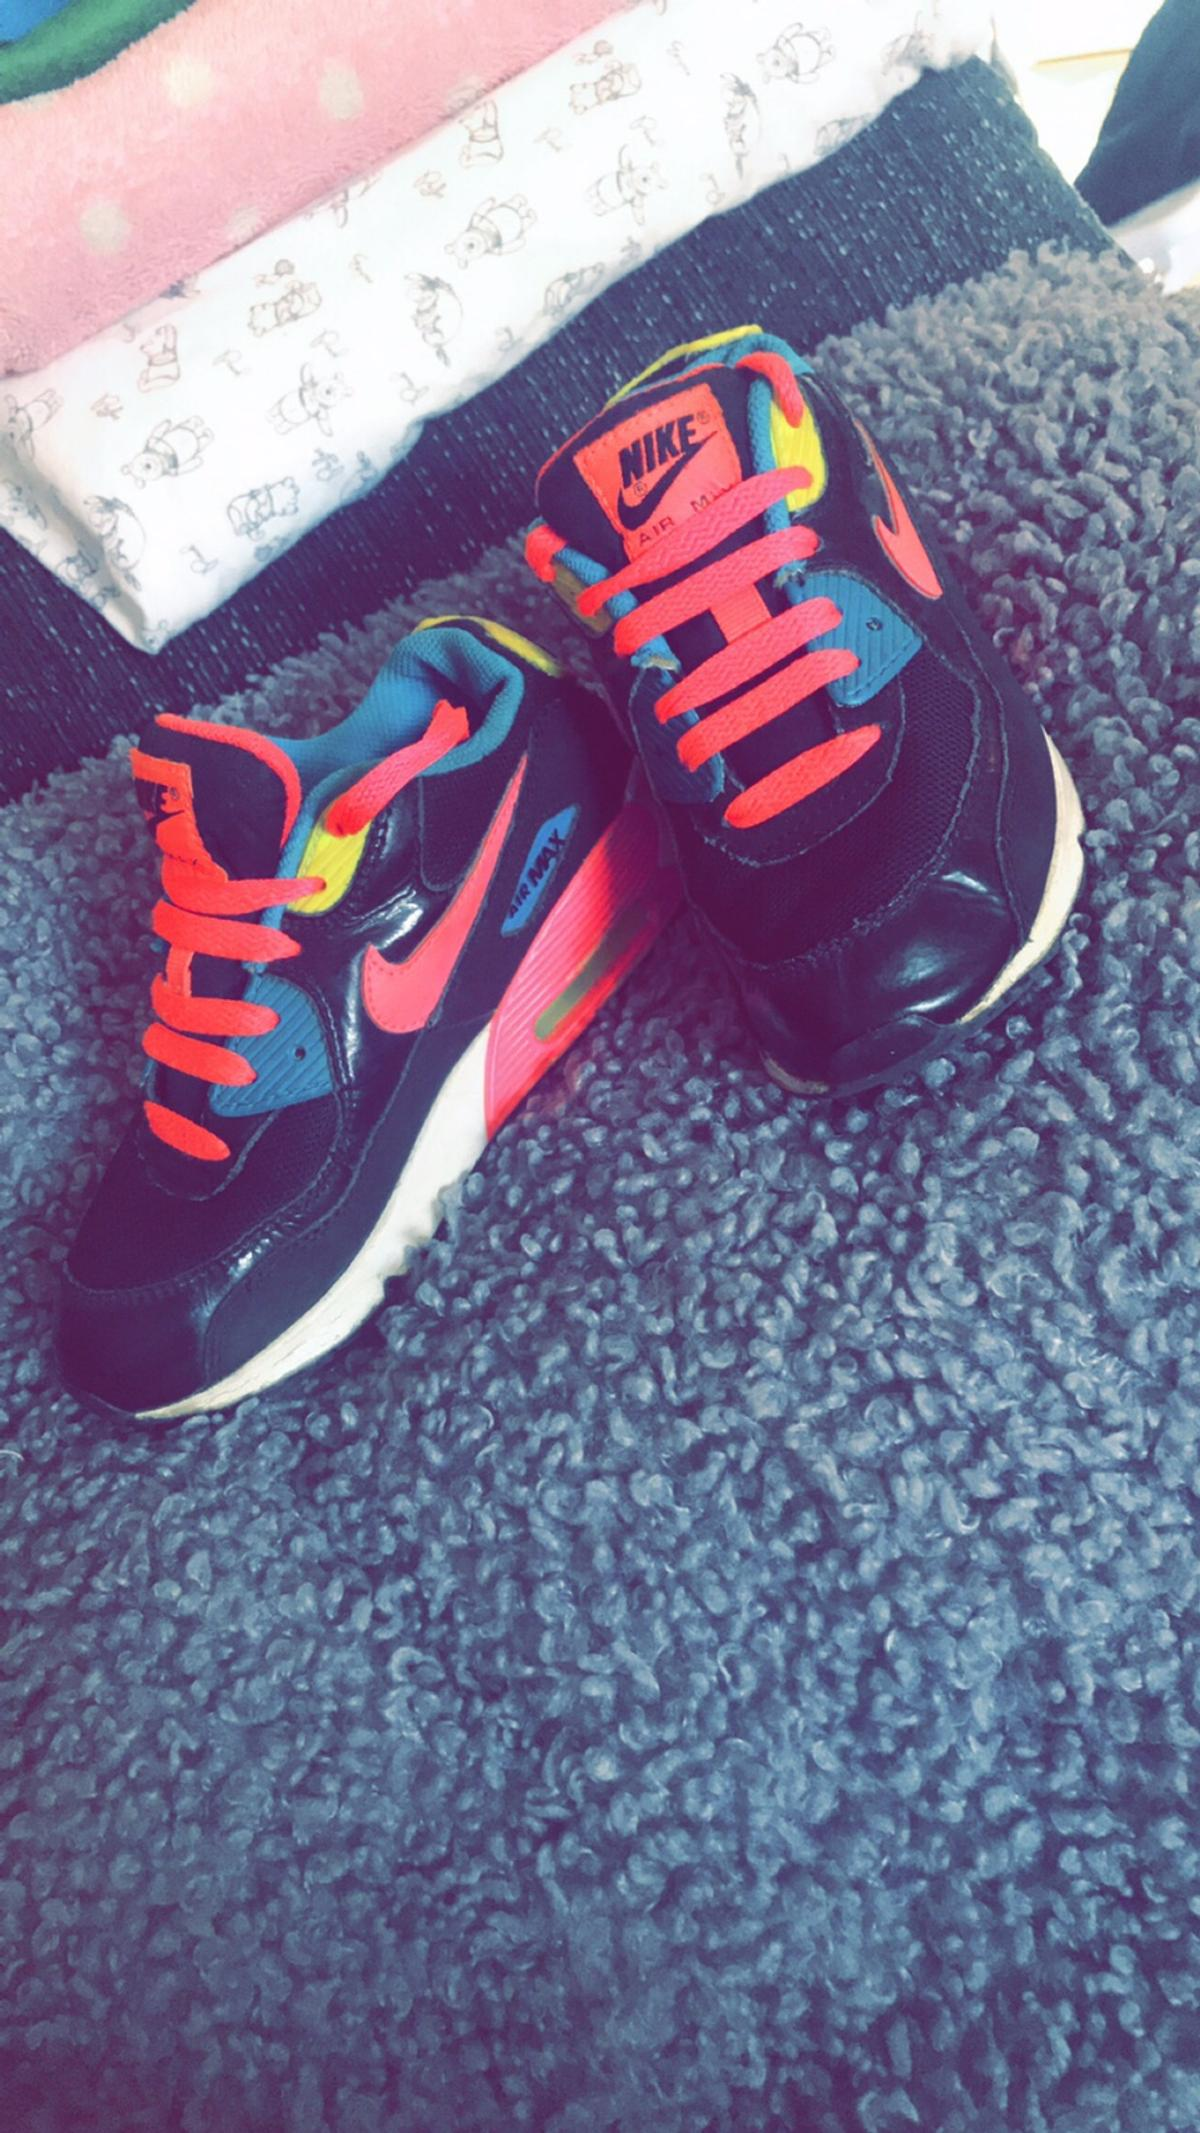 c35363652a Kids size 13 Nike air max in S43 Bolsover for £5.00 for sale - Shpock